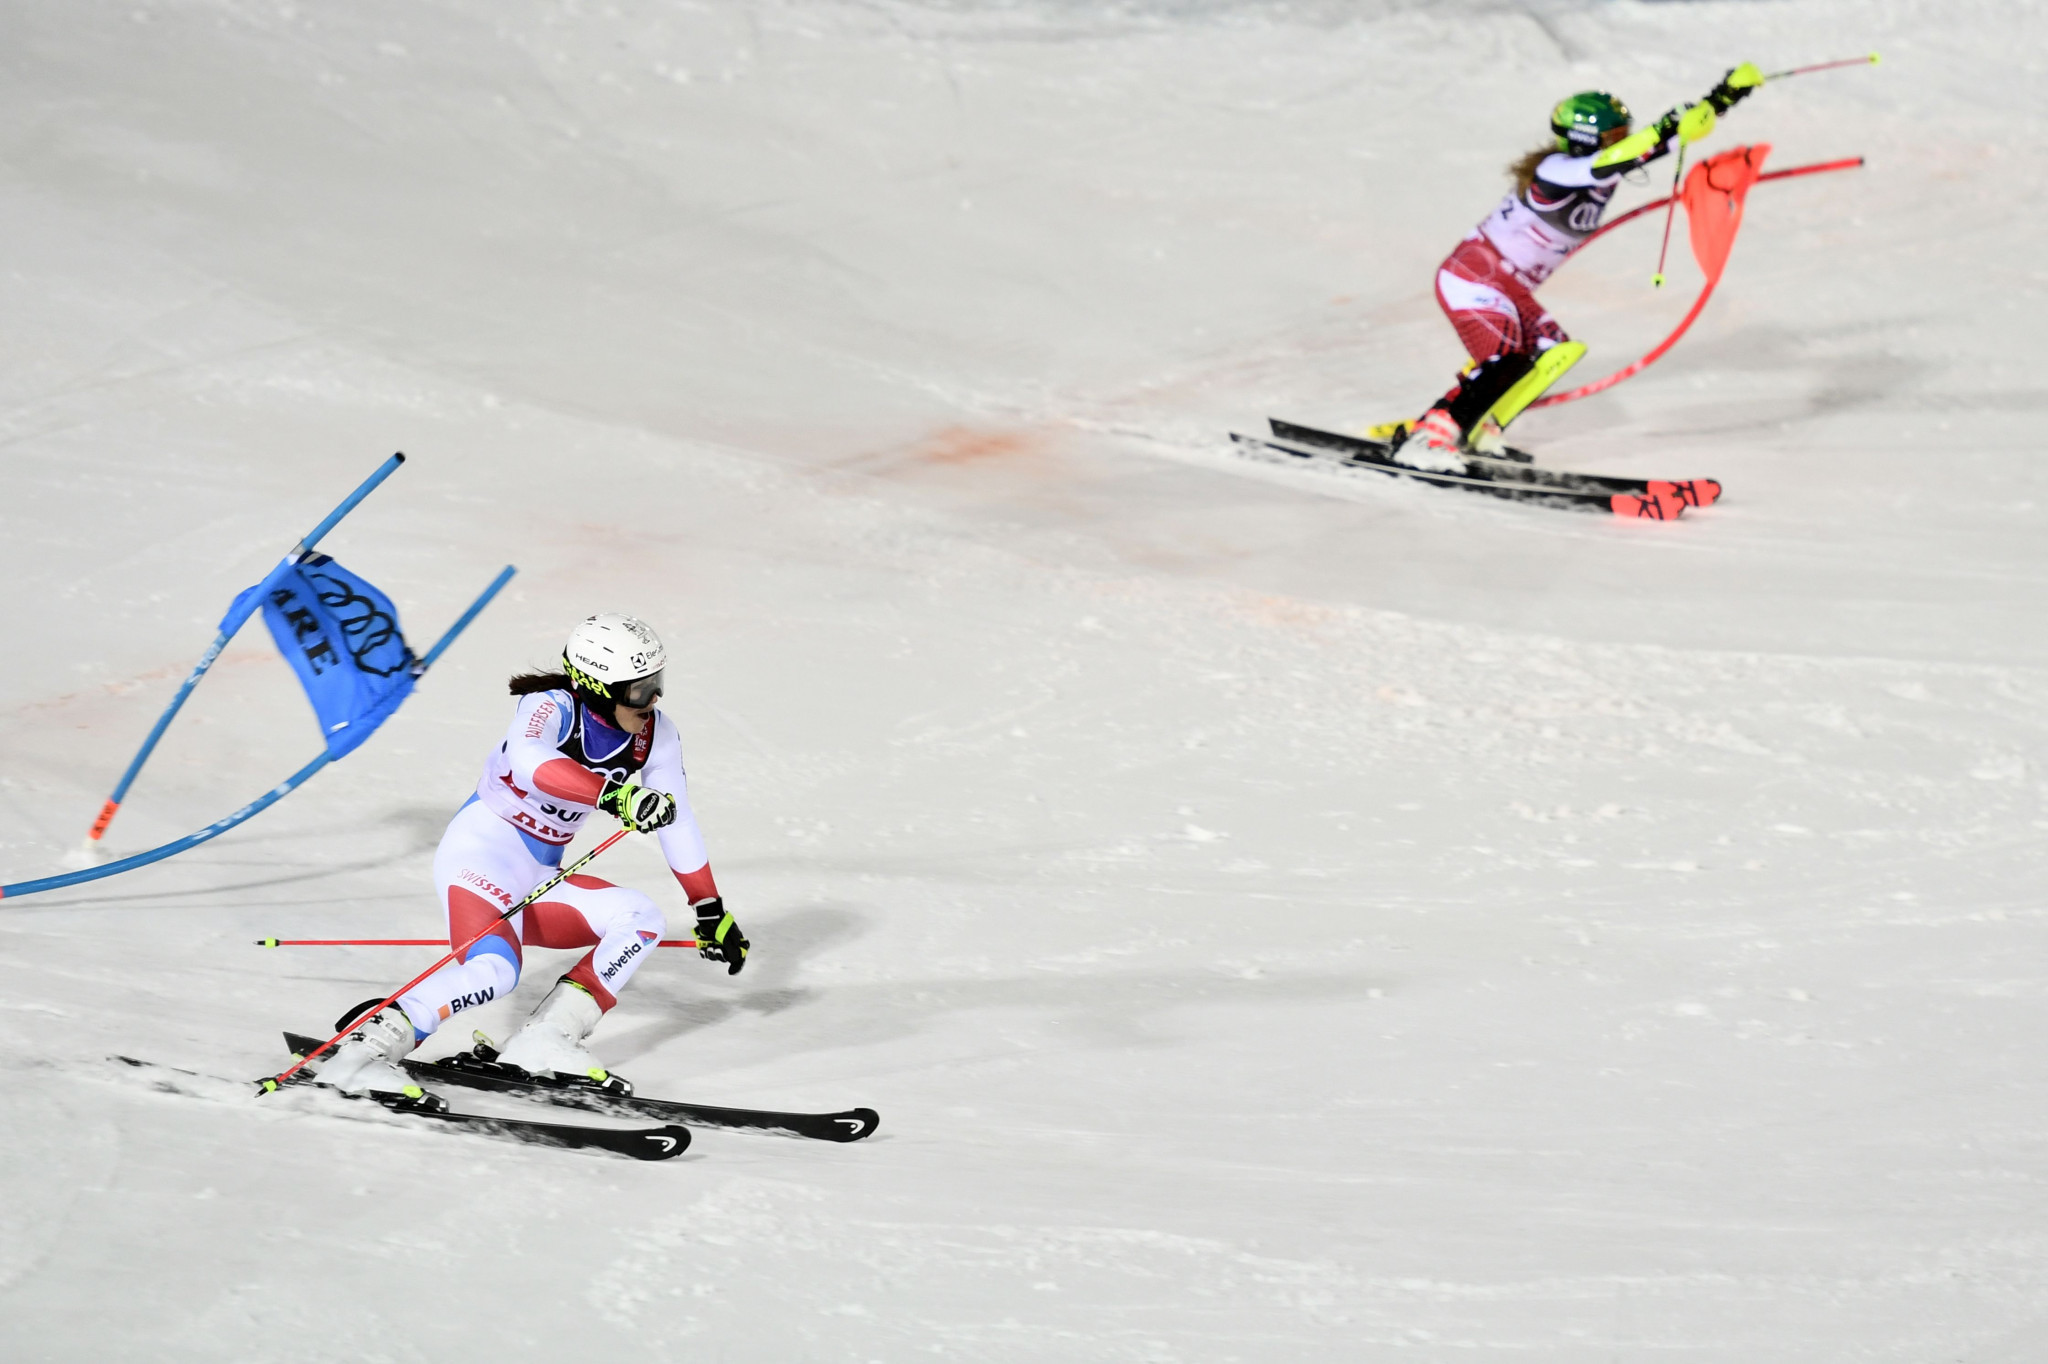 Switzerland defeated Austria in the final of the parallel slalom competition ©Getty Images